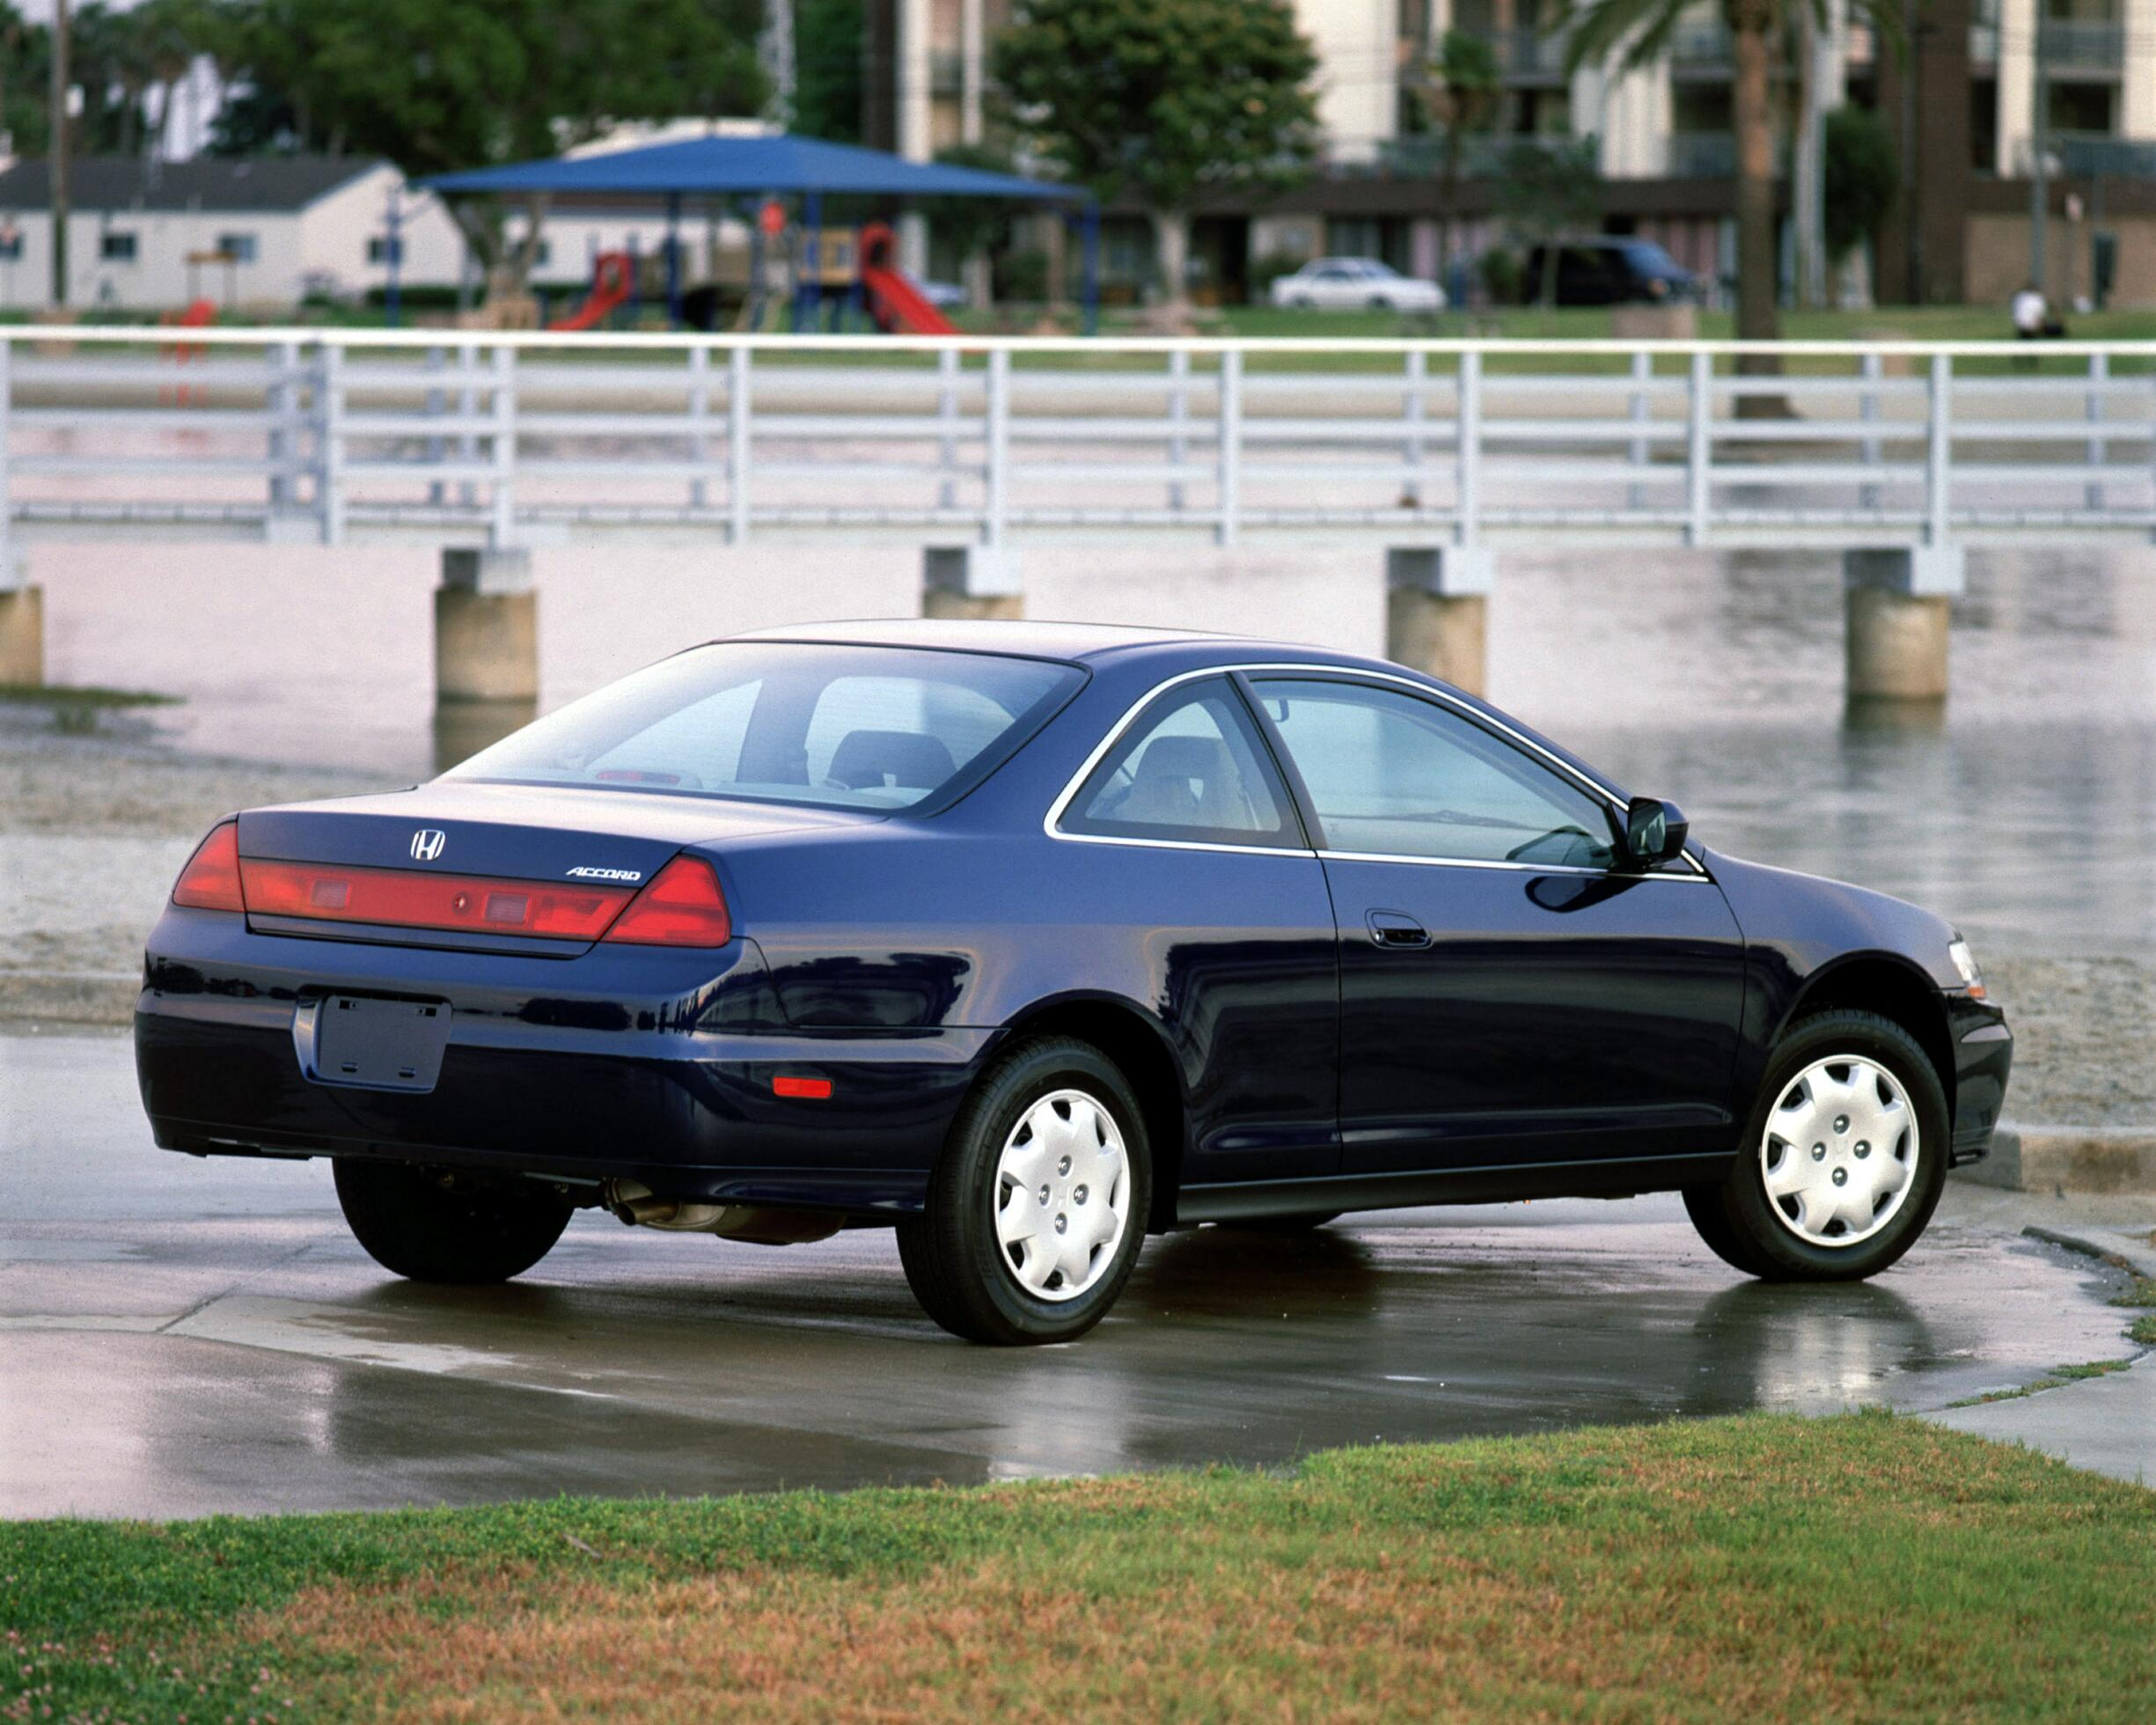 Index of /img/2001-honda-accord-coupe